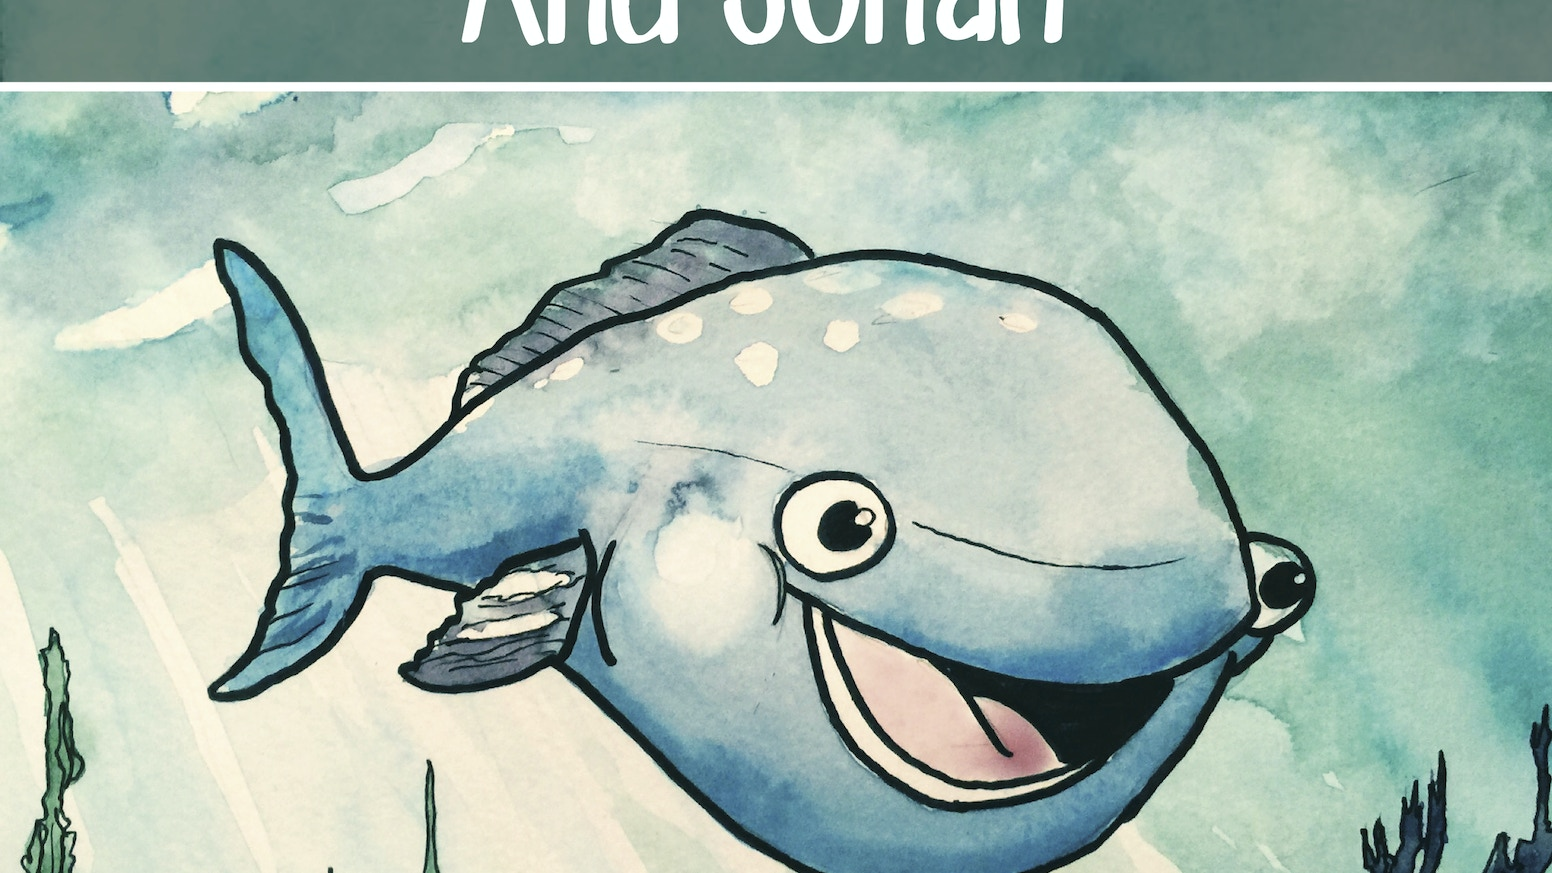 The Giant Fish & Jonah: A Bible Story From A New Perspective